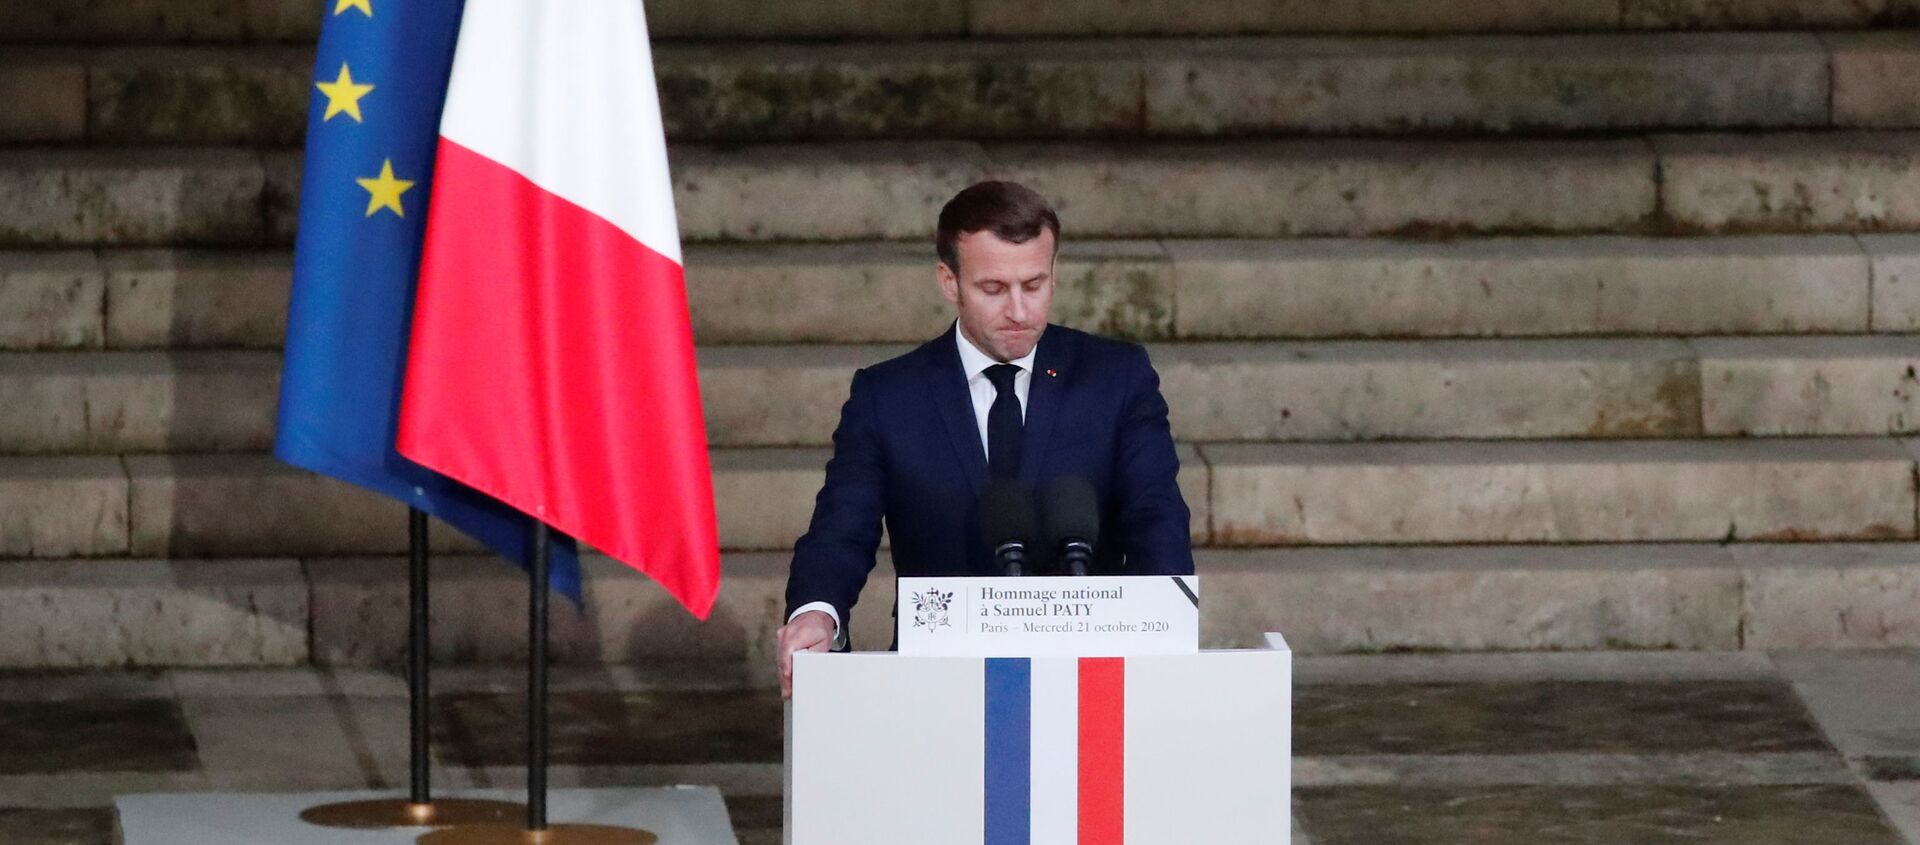 French President Emmanuel Macron delivers his speech in front of the coffin of slain teacher Samuel Paty during a national memorial event, in Paris, France October 21, 2020.  - Sputnik International, 1920, 29.10.2020